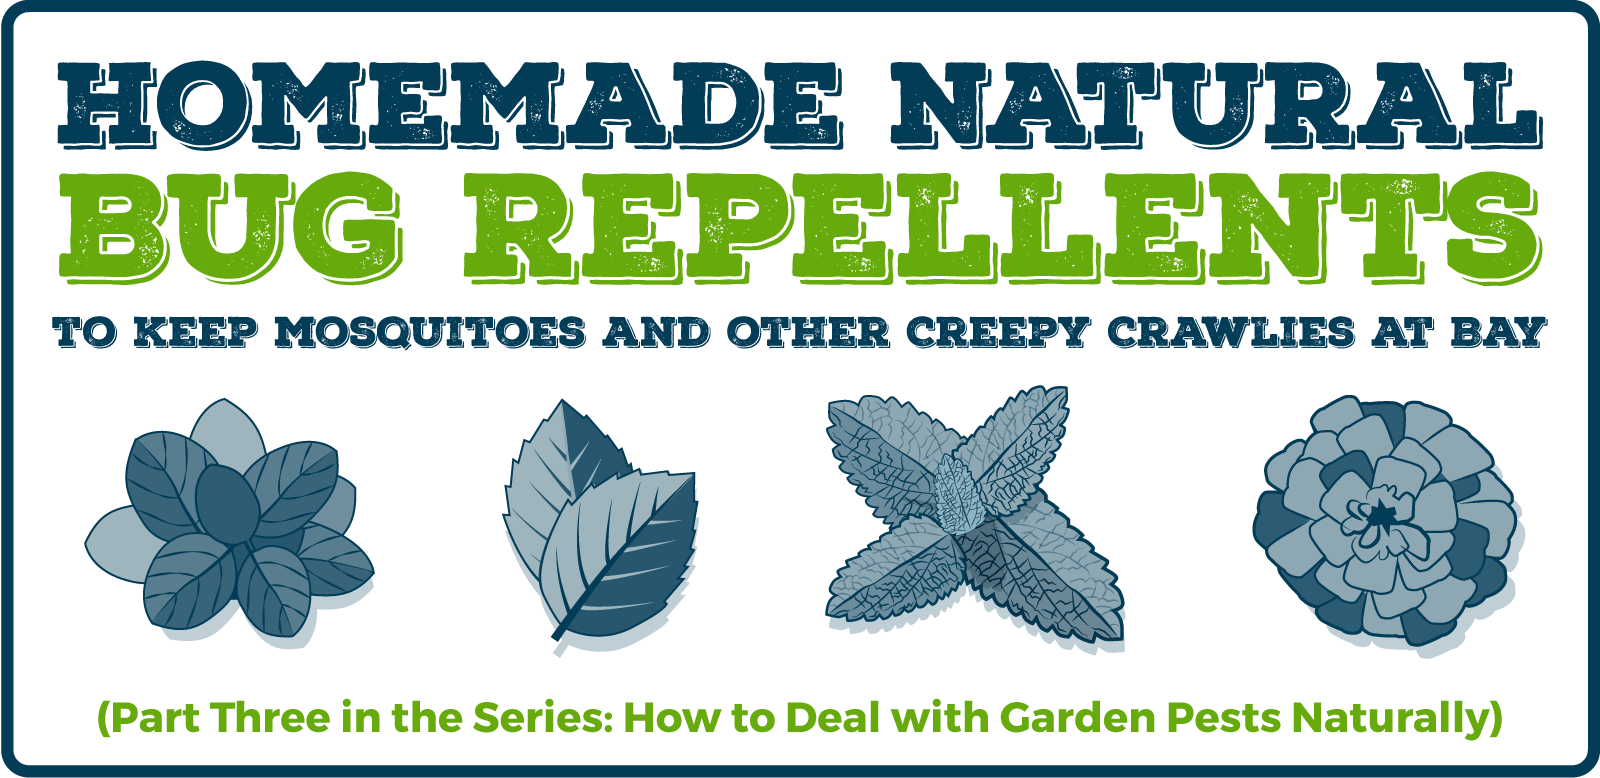 Homemade Natural Bug Repellents: (Part Three in the Series: How to Deal with Garden Pests Naturally)